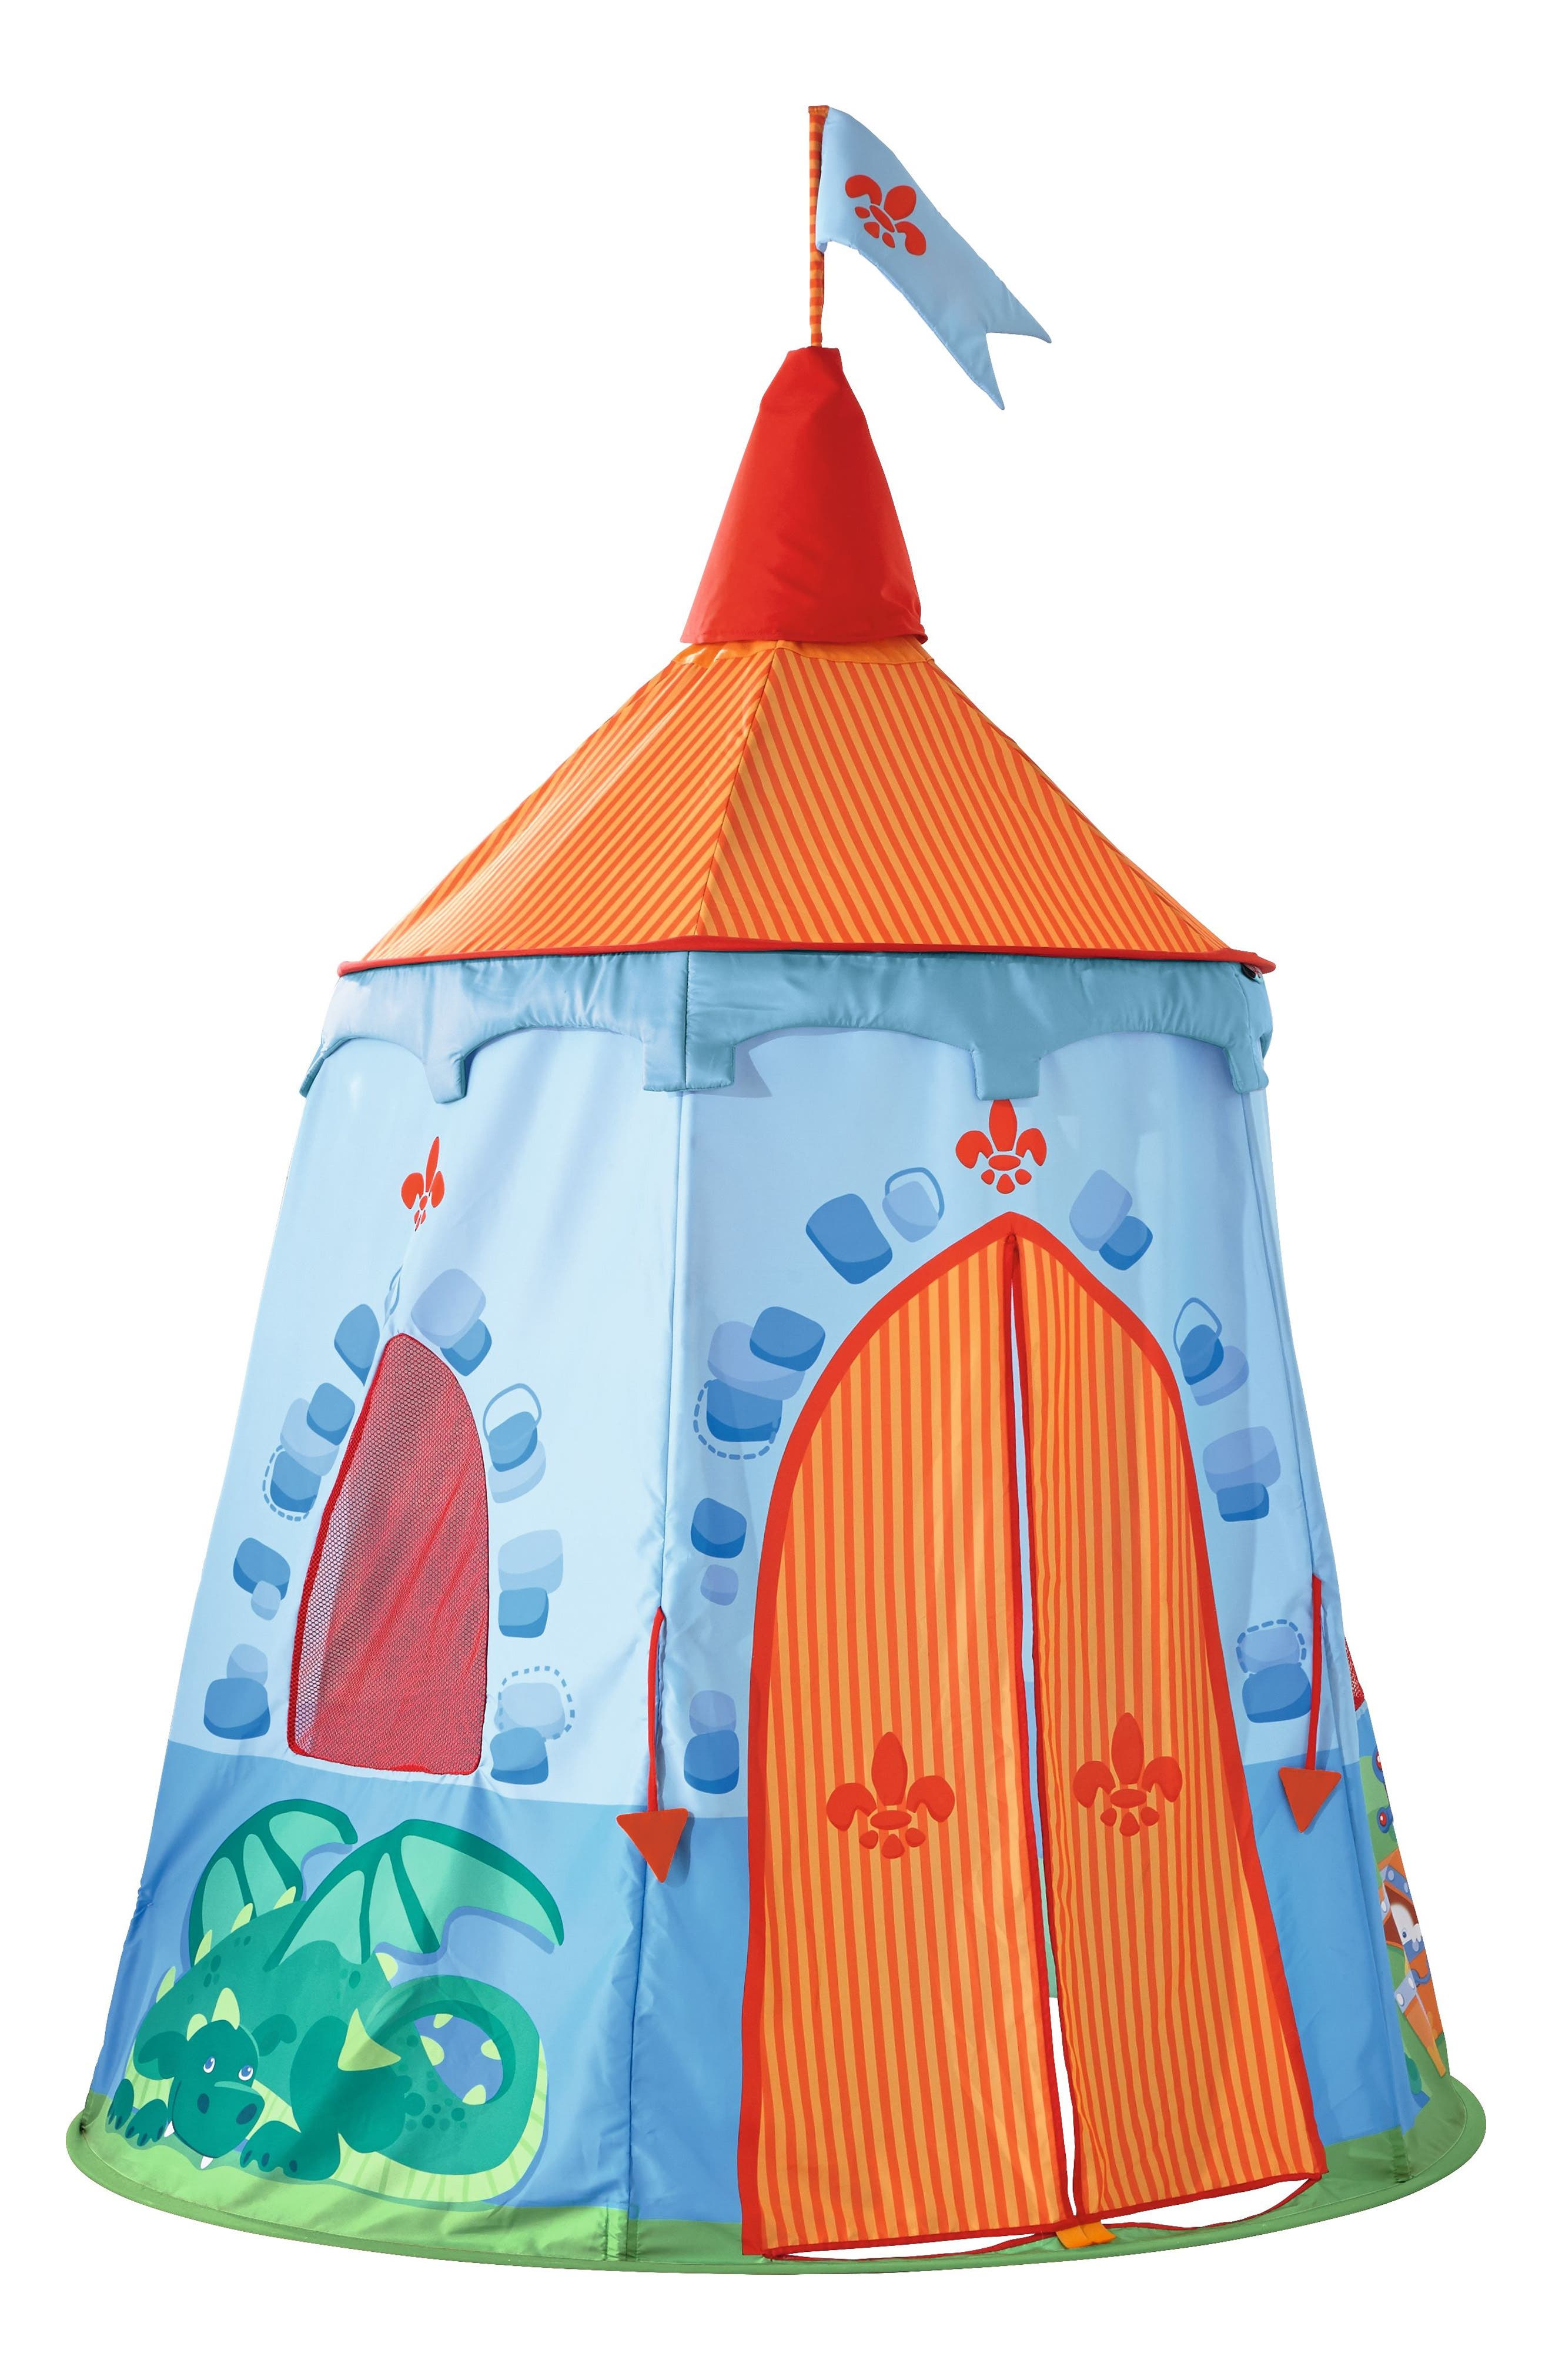 Knight's Hold Play Tent,                             Main thumbnail 1, color,                             400